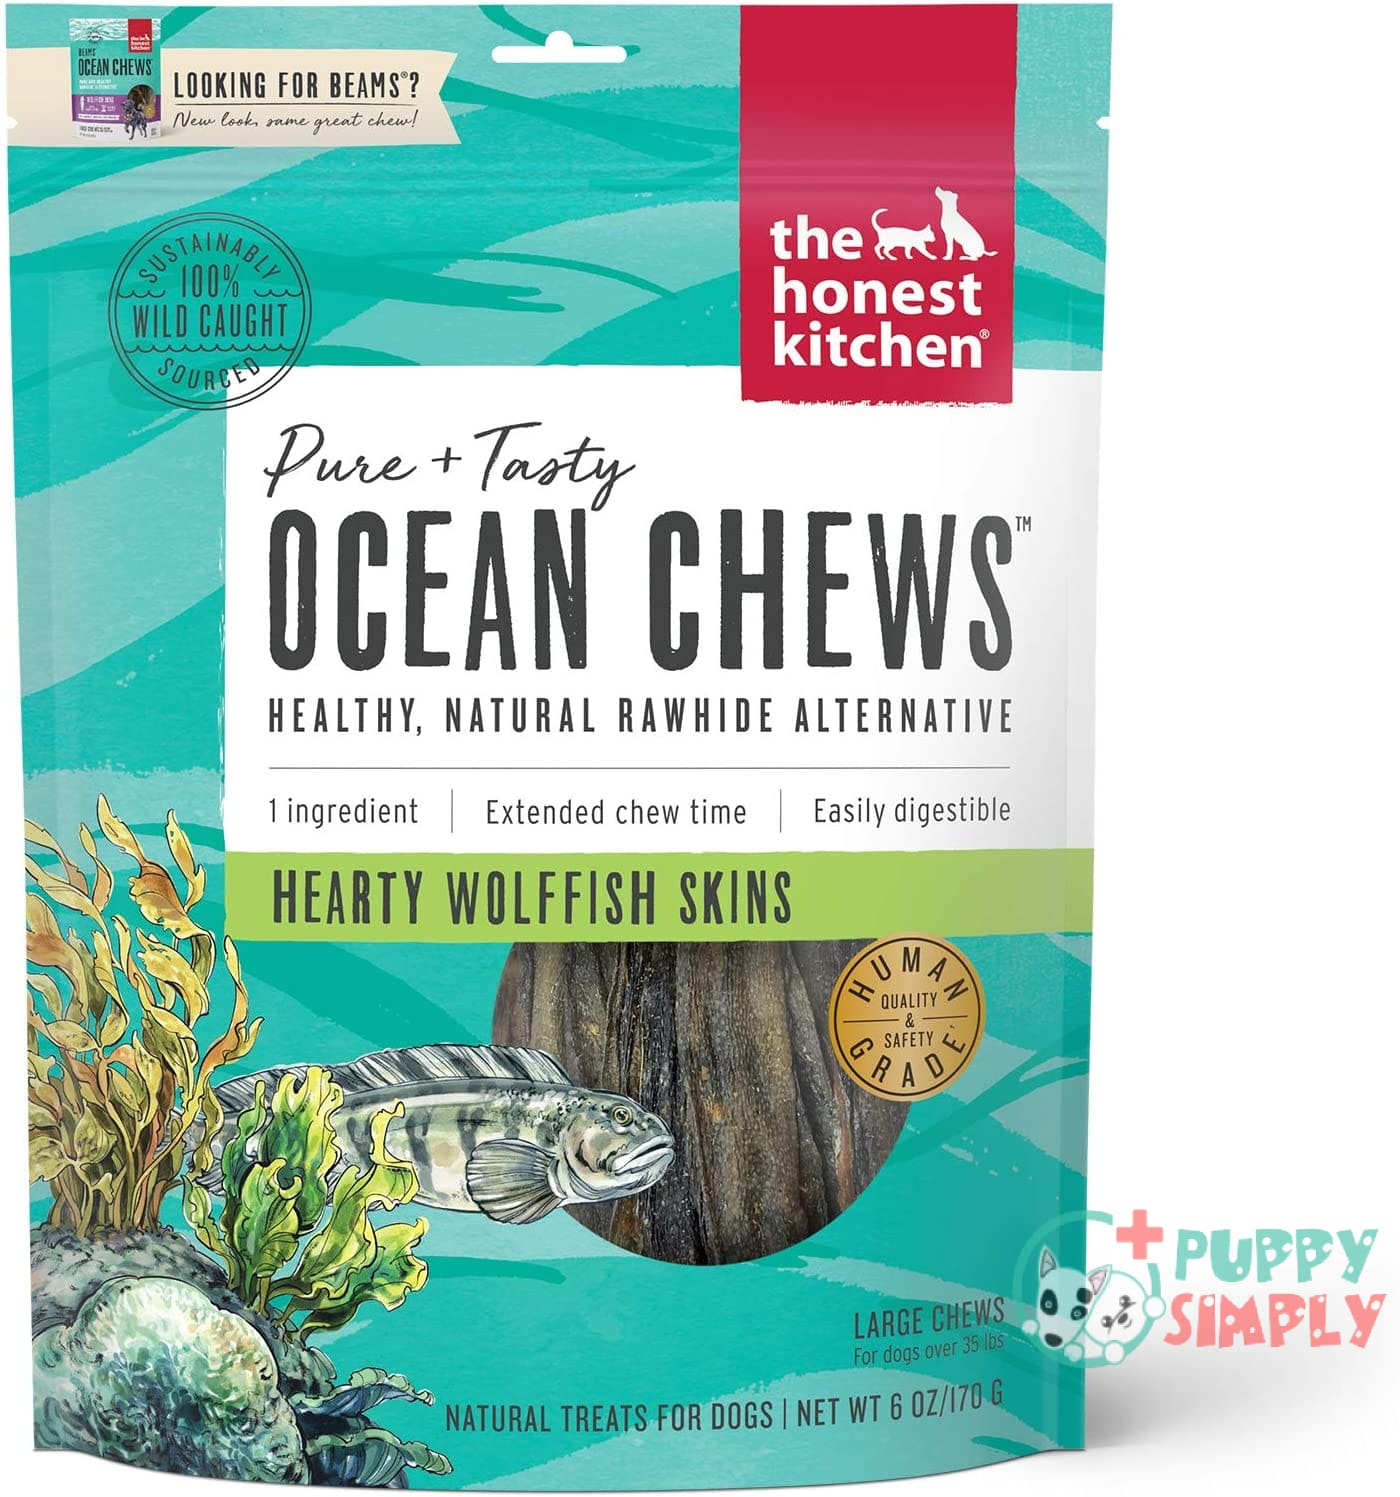 The Honest Kitchen Ocean Chews